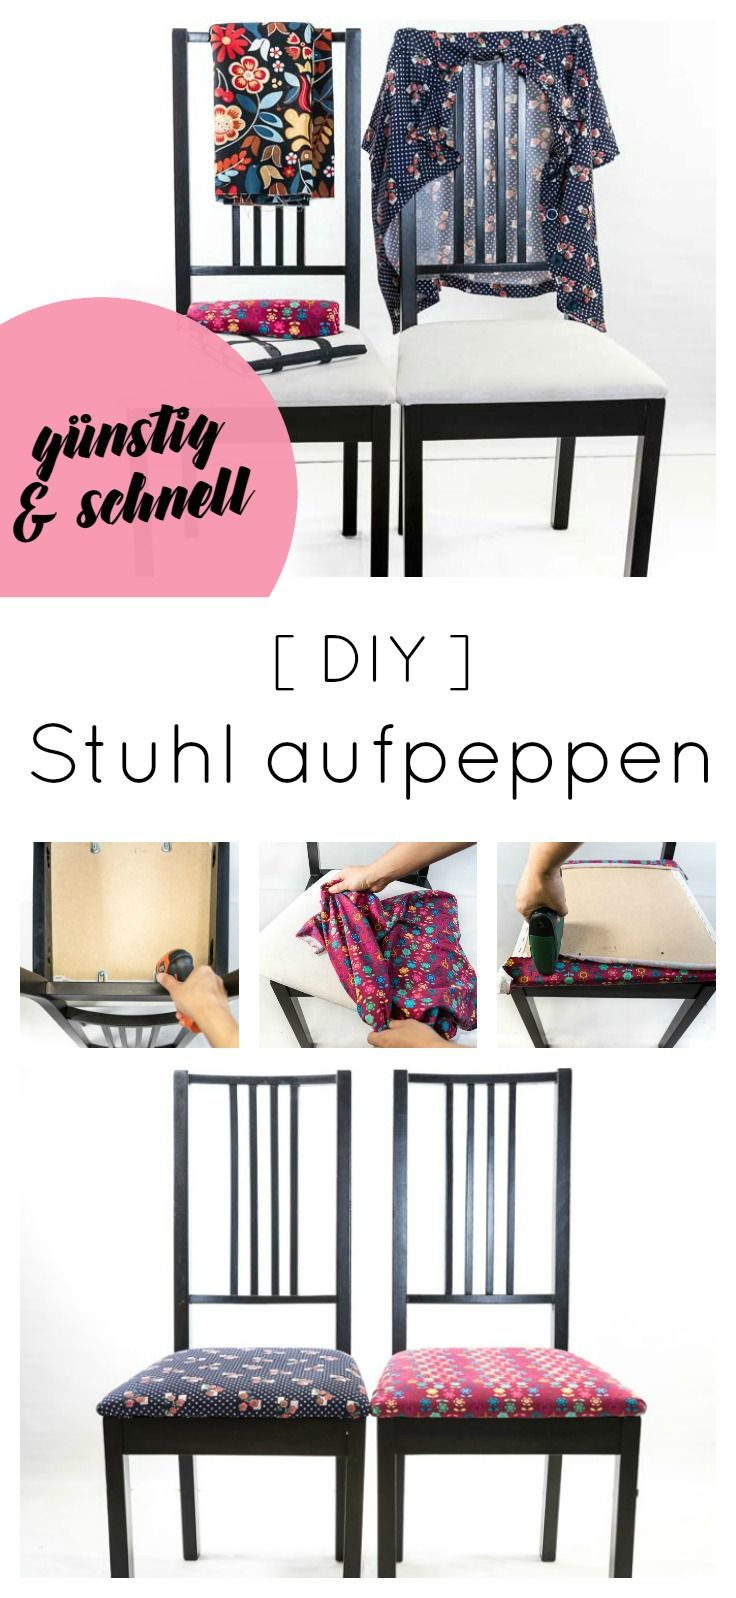 ikea hack stuhl mit stoff beziehen german blogger diy pinterest st hle ikea und. Black Bedroom Furniture Sets. Home Design Ideas